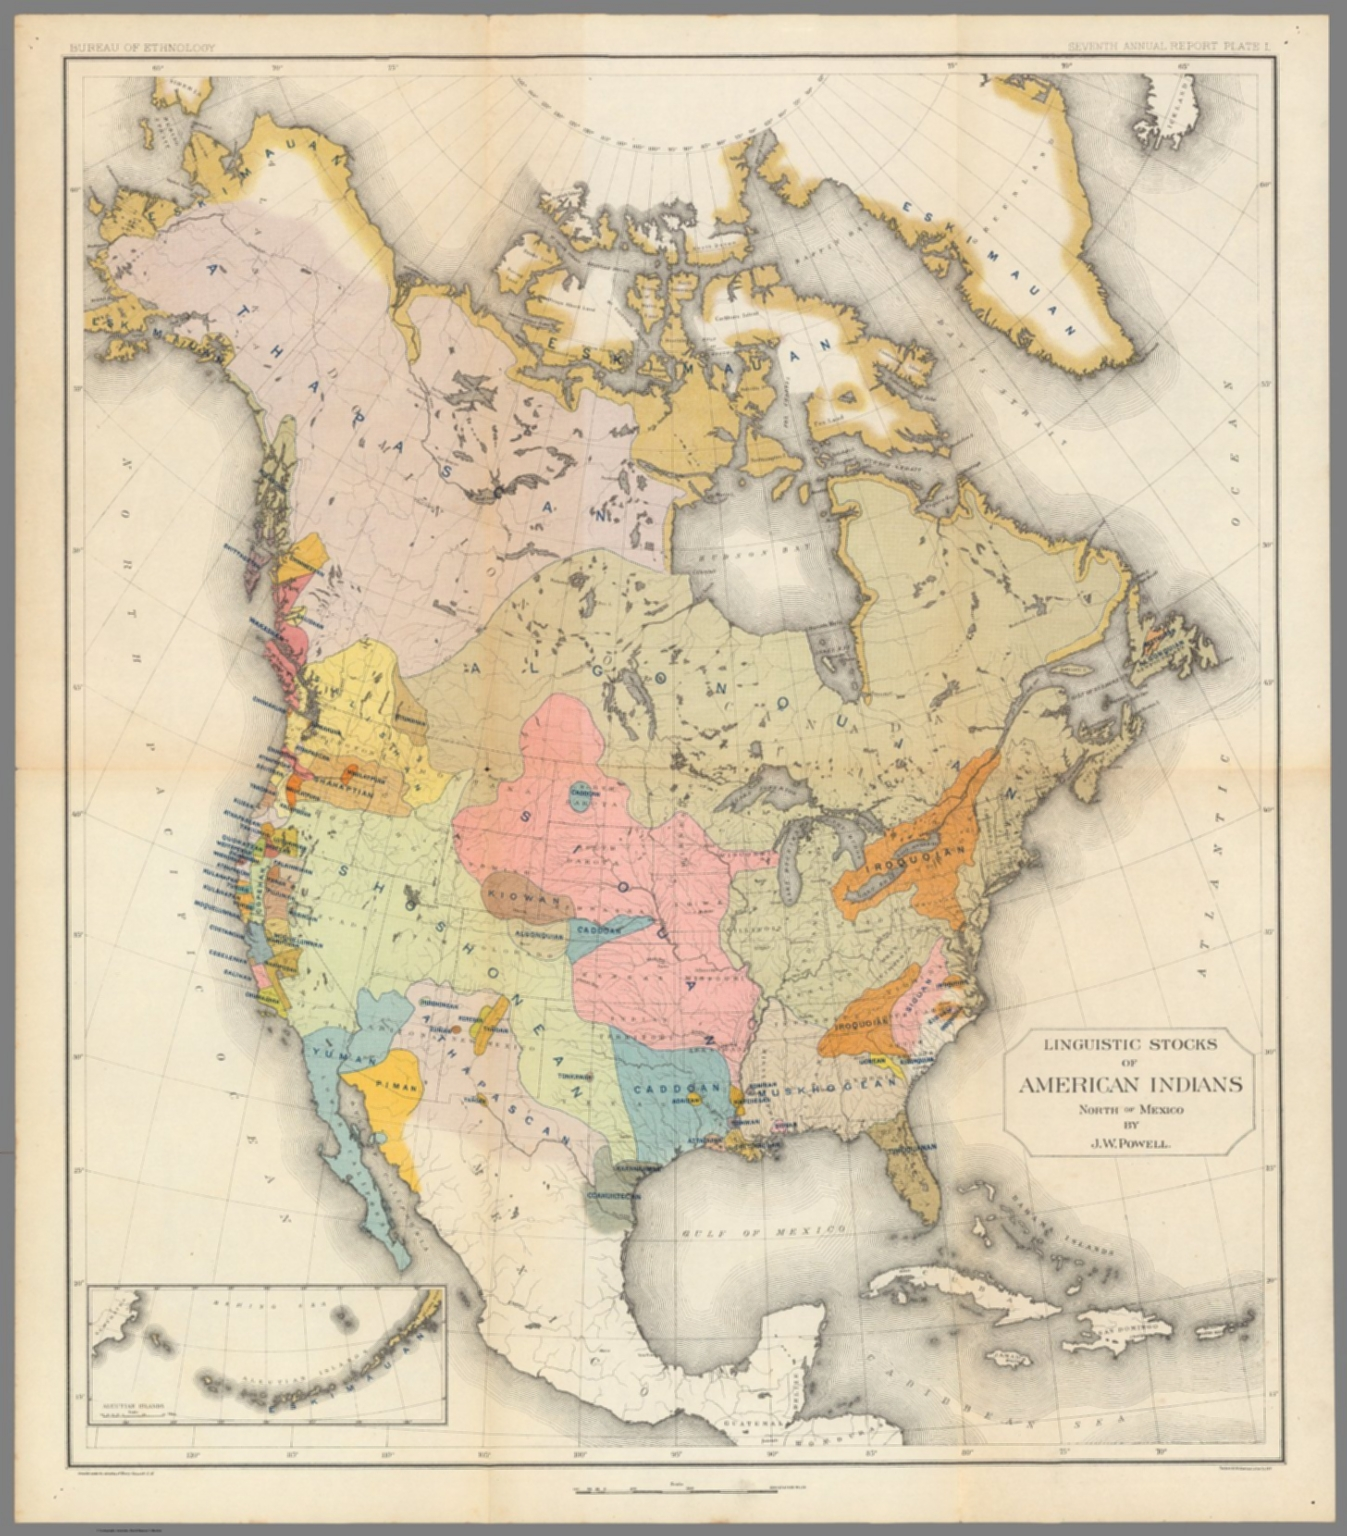 Linguistic Stocks of American Indians North of Mexico By J.W. Powell.